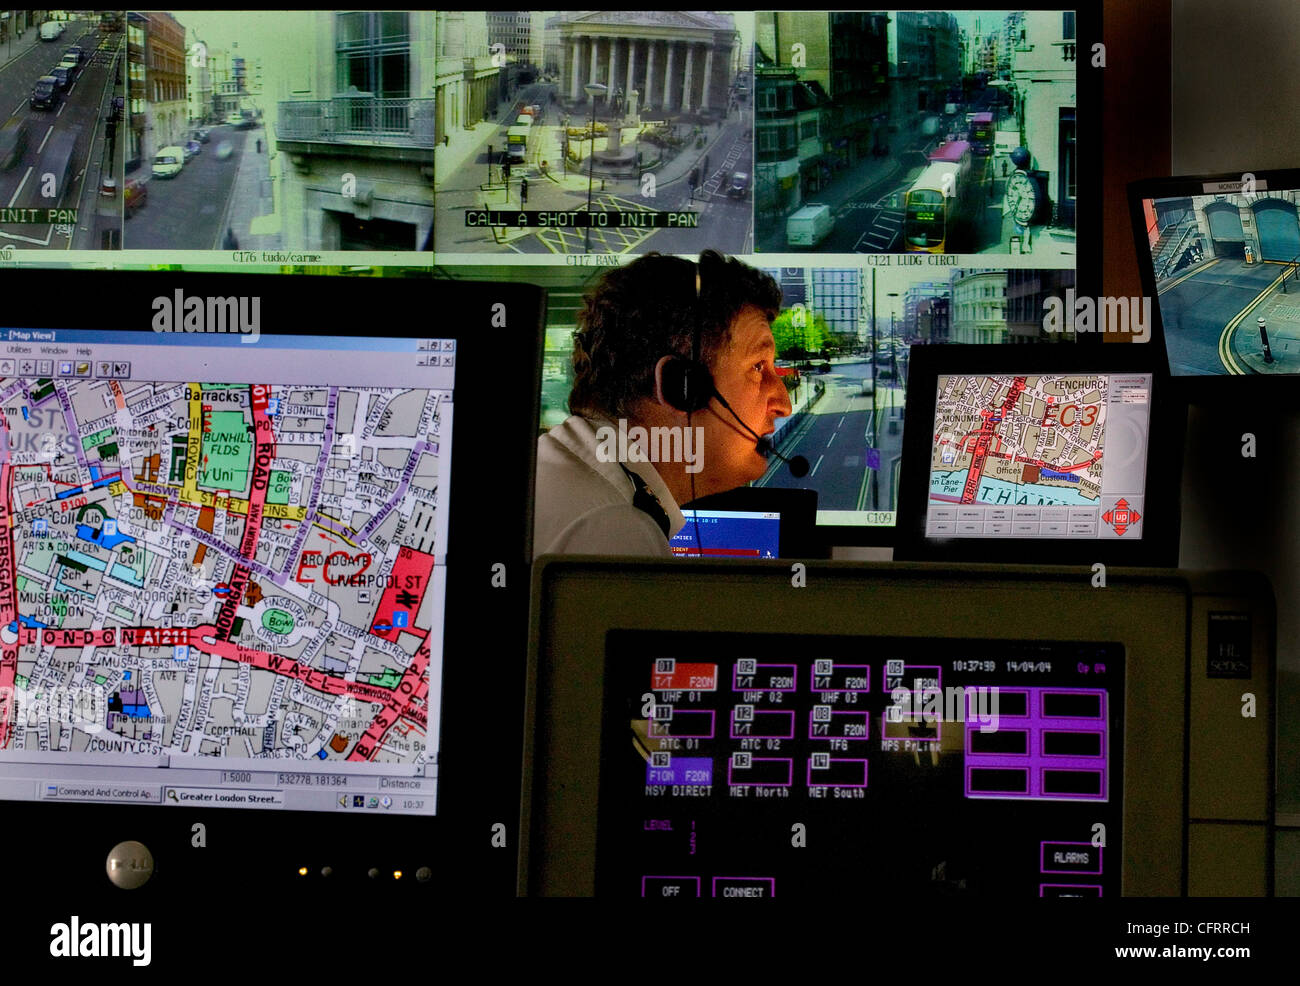 Traffic control crime surveillance room, London, UK - Stock Image